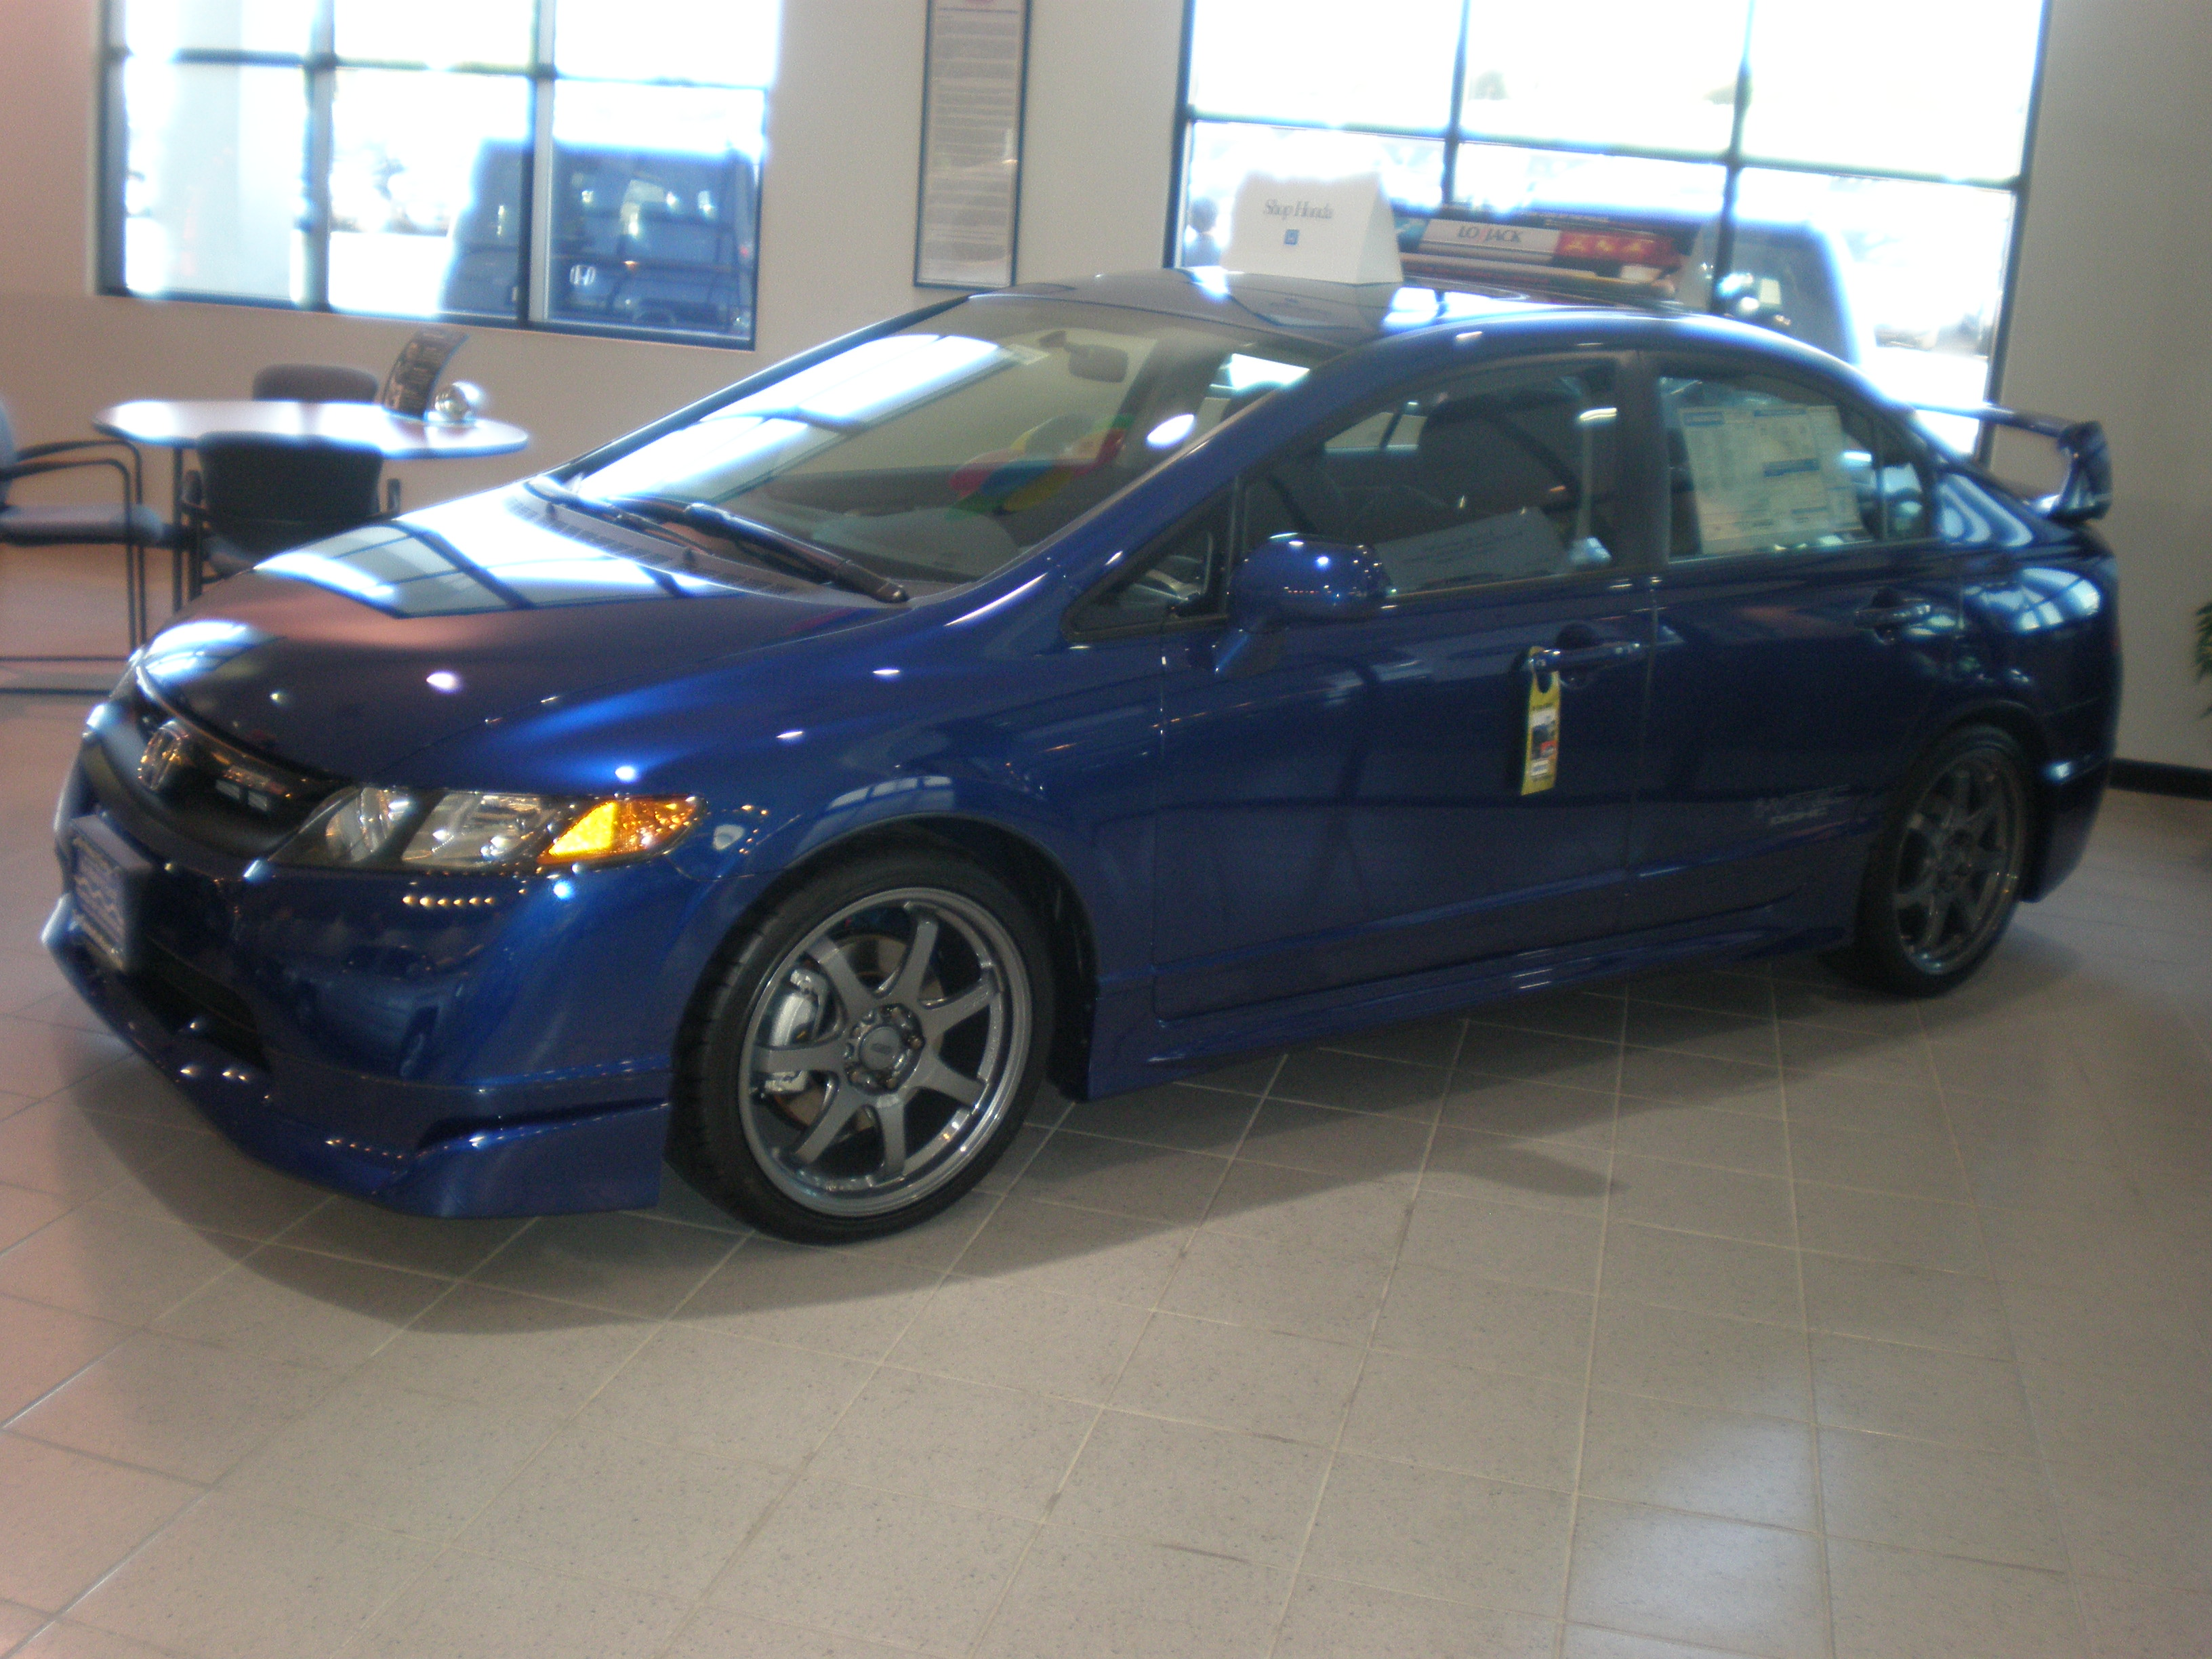 File:2008 blue Honda Civic Mugen Si sedan side.JPG